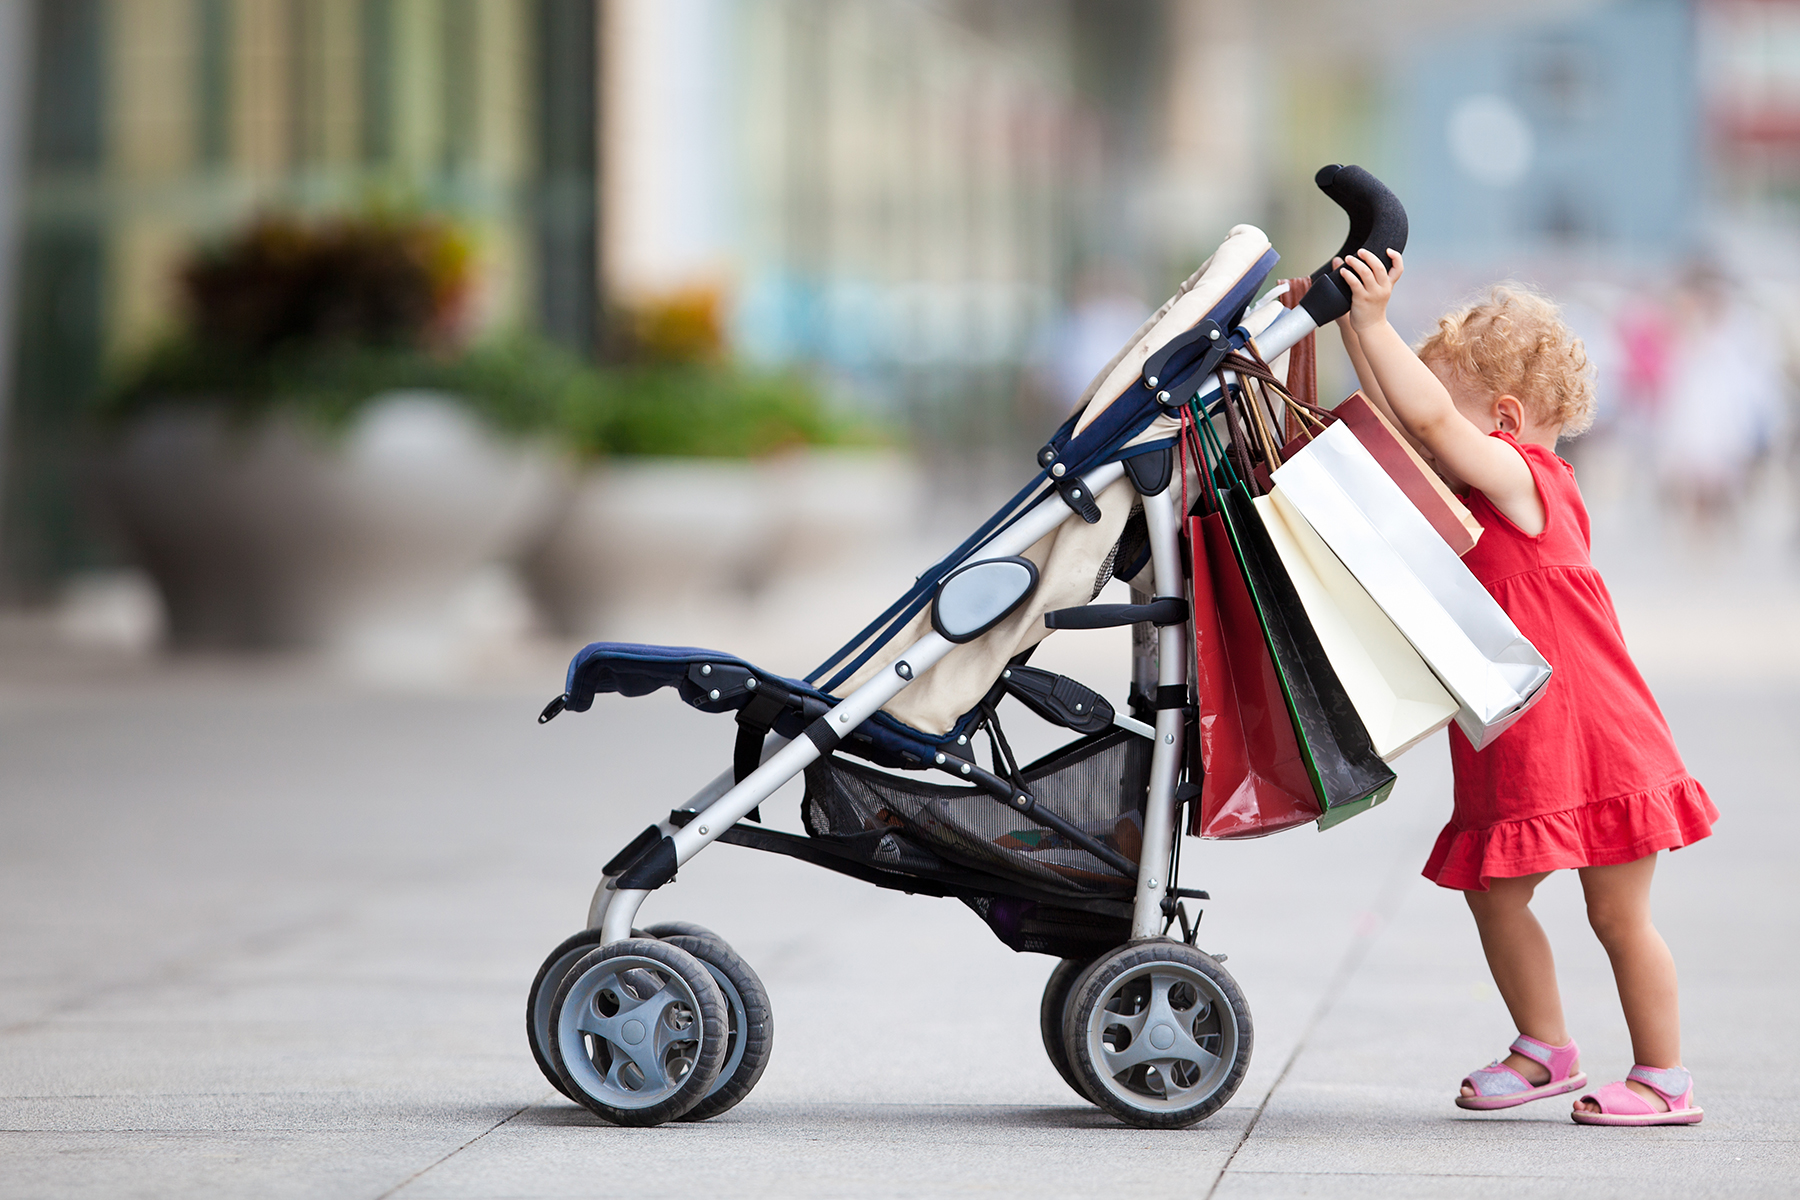 Toddler pushing stroller loaded with shopping bags